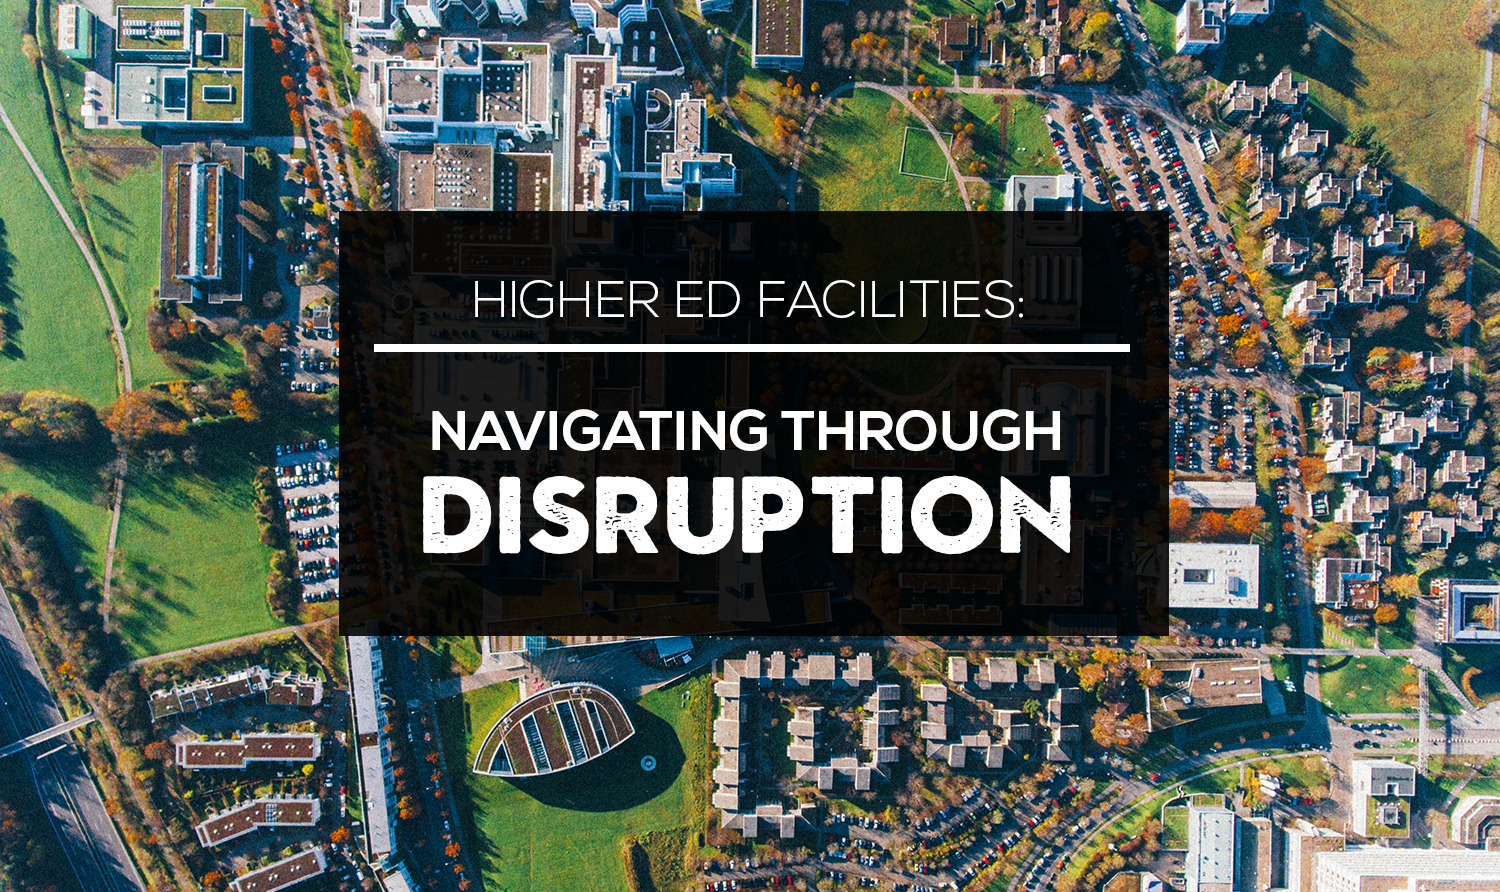 https://cdn2.hubspot.net/hubfs/1564584/A-Higher%20Ed%20Facilities%20Forum/Images/Navigating-Through-Disruption.png